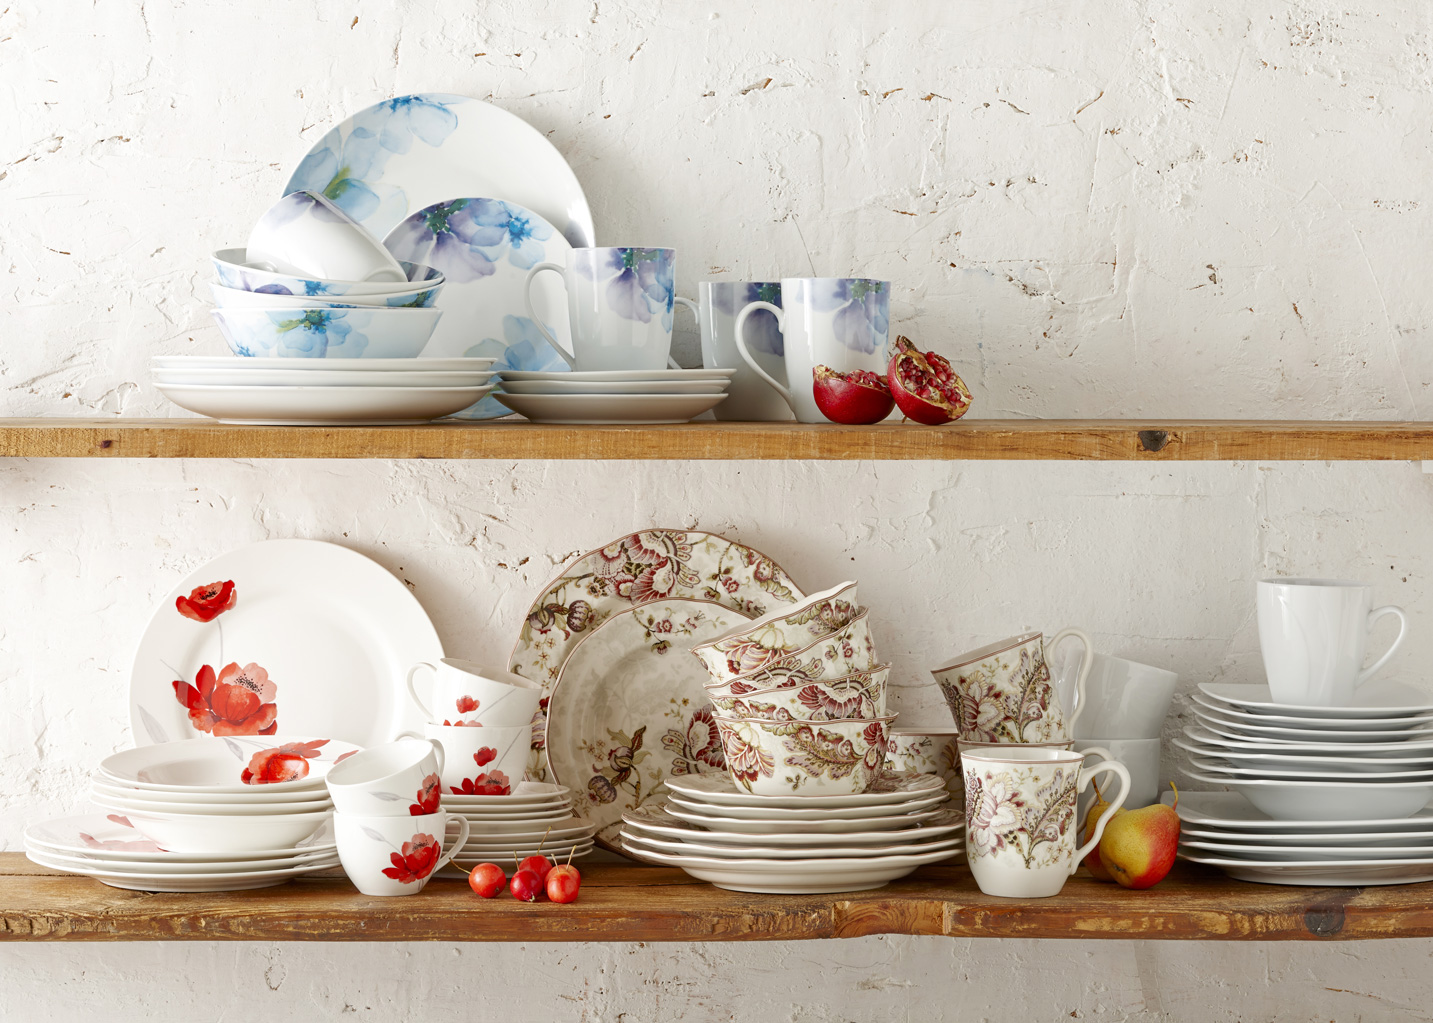 BOGO-FLYER-dinnerware